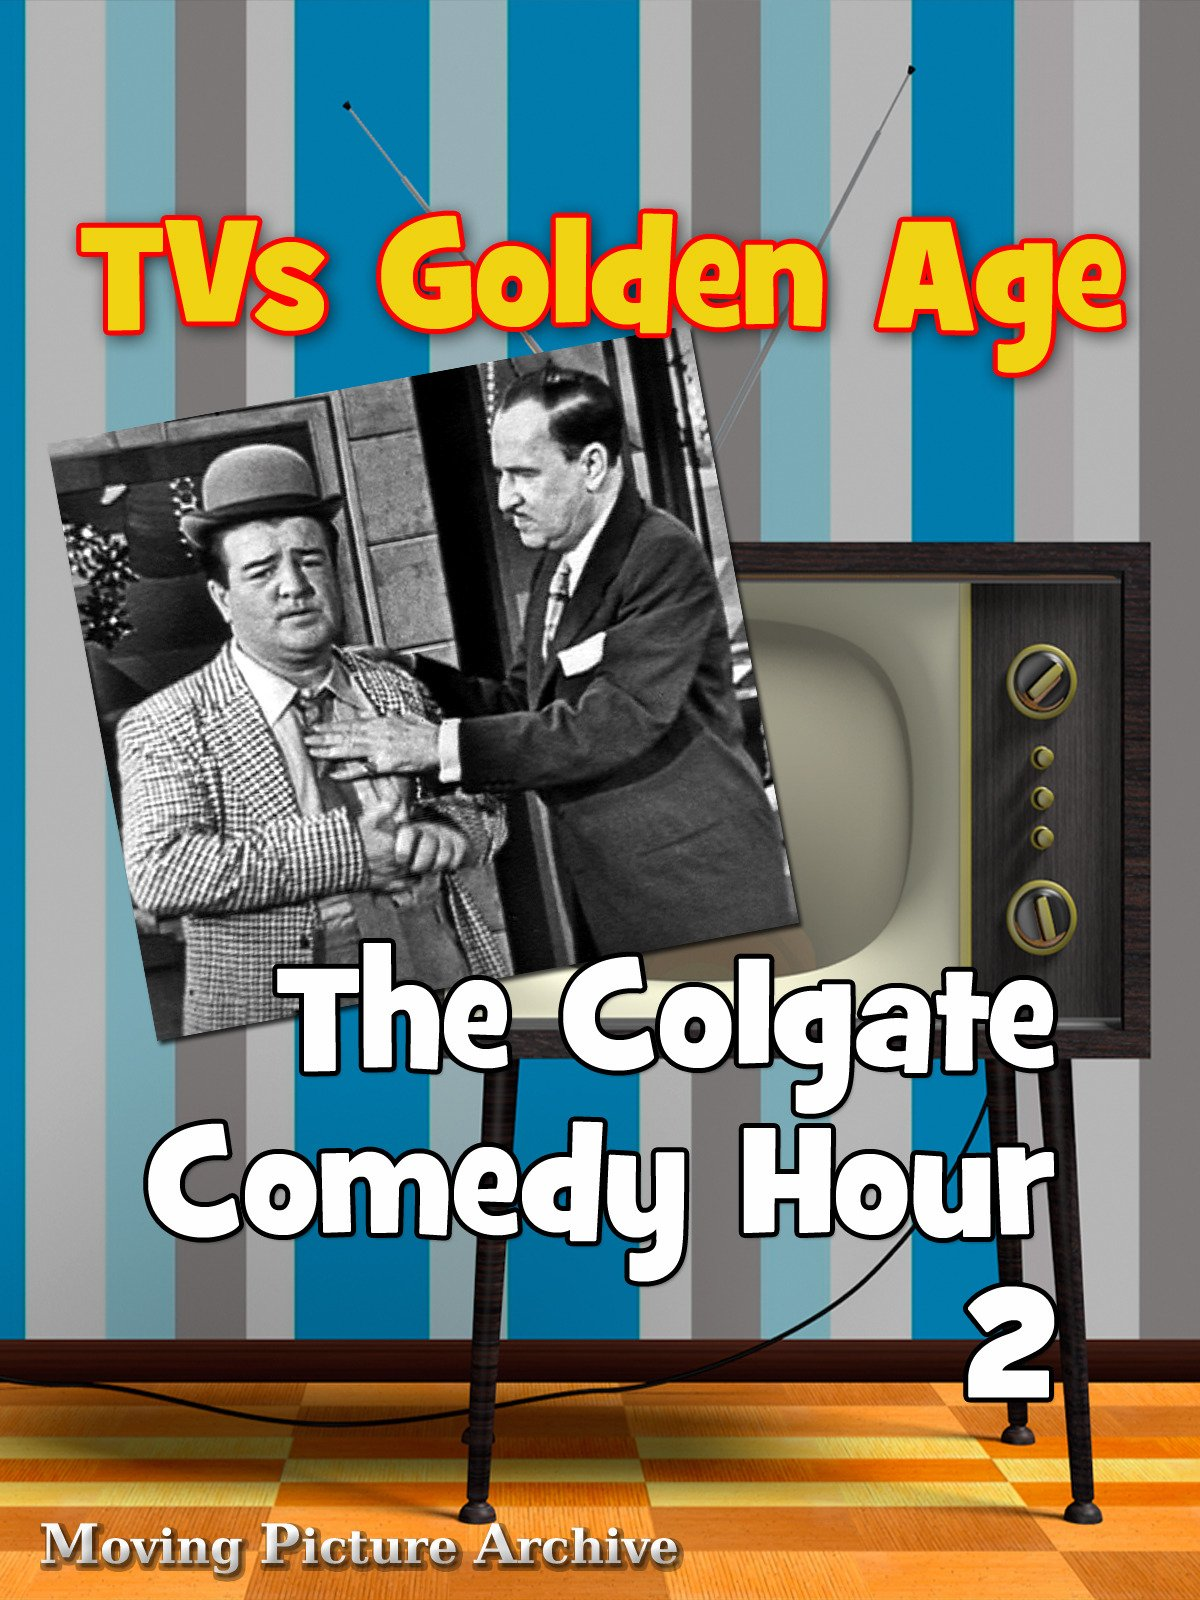 TV's Golden Age